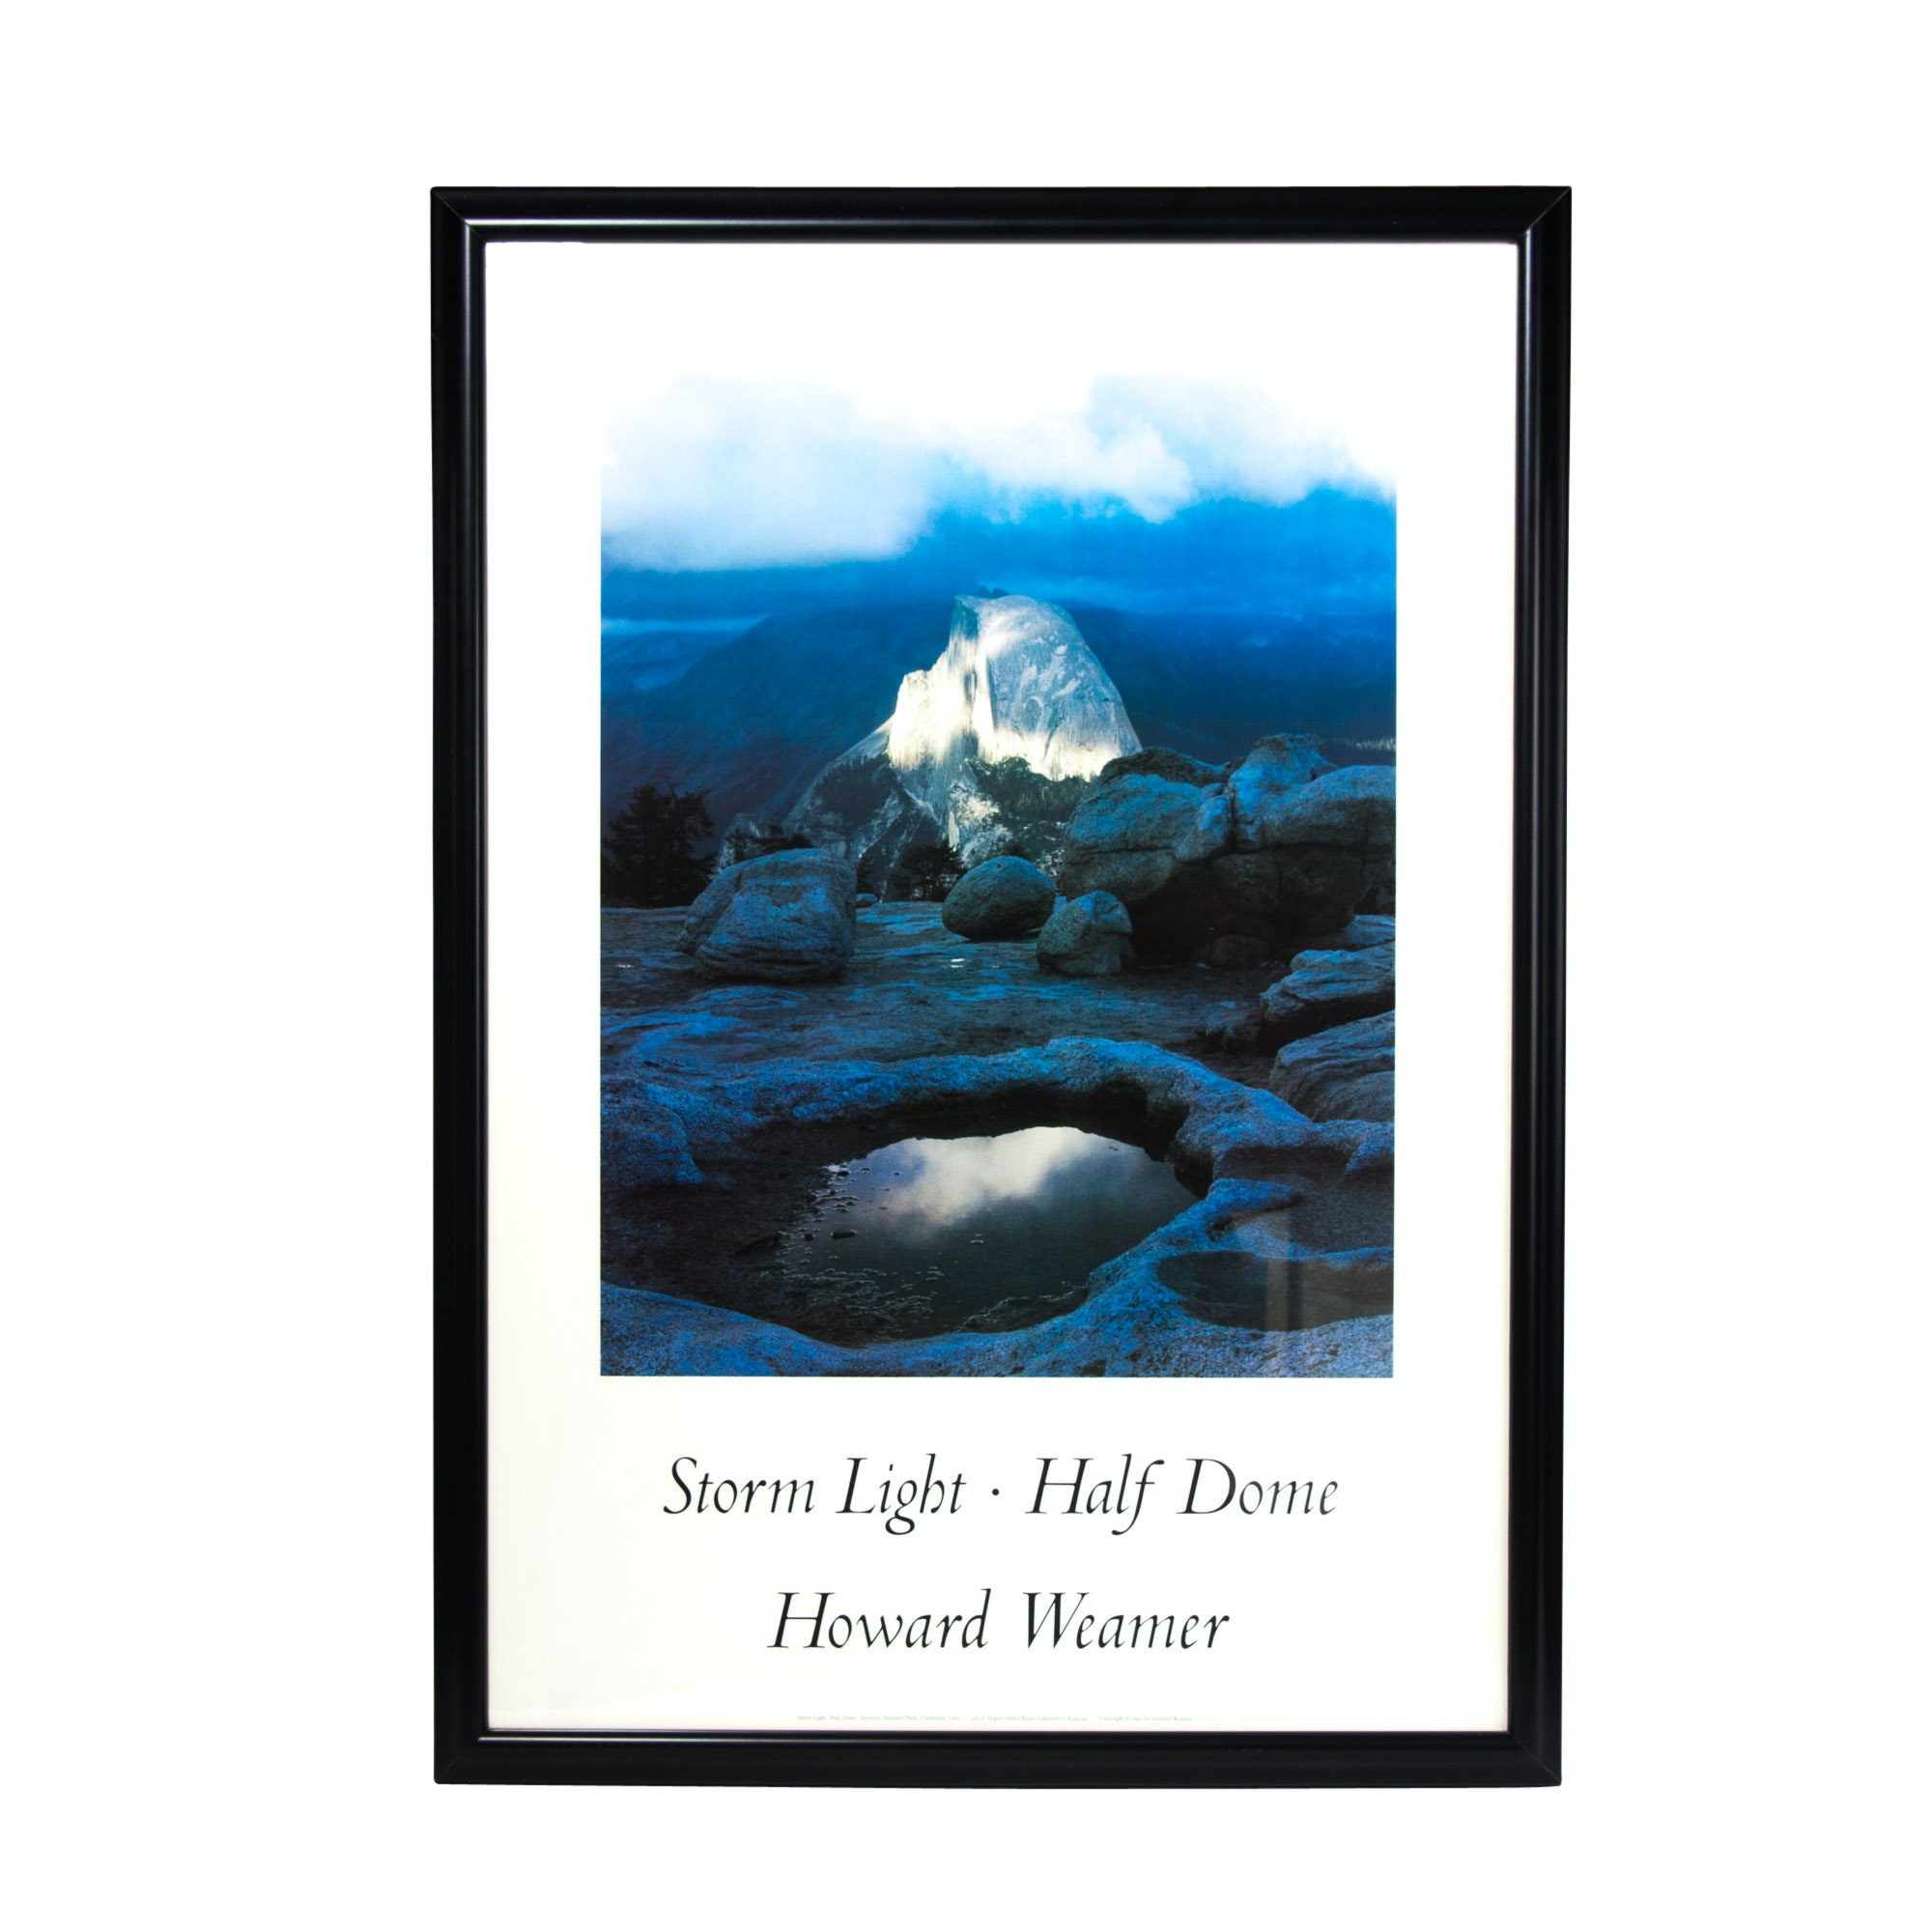 """Storm Light Half Dome"" Howard Weamer Framed Poster"